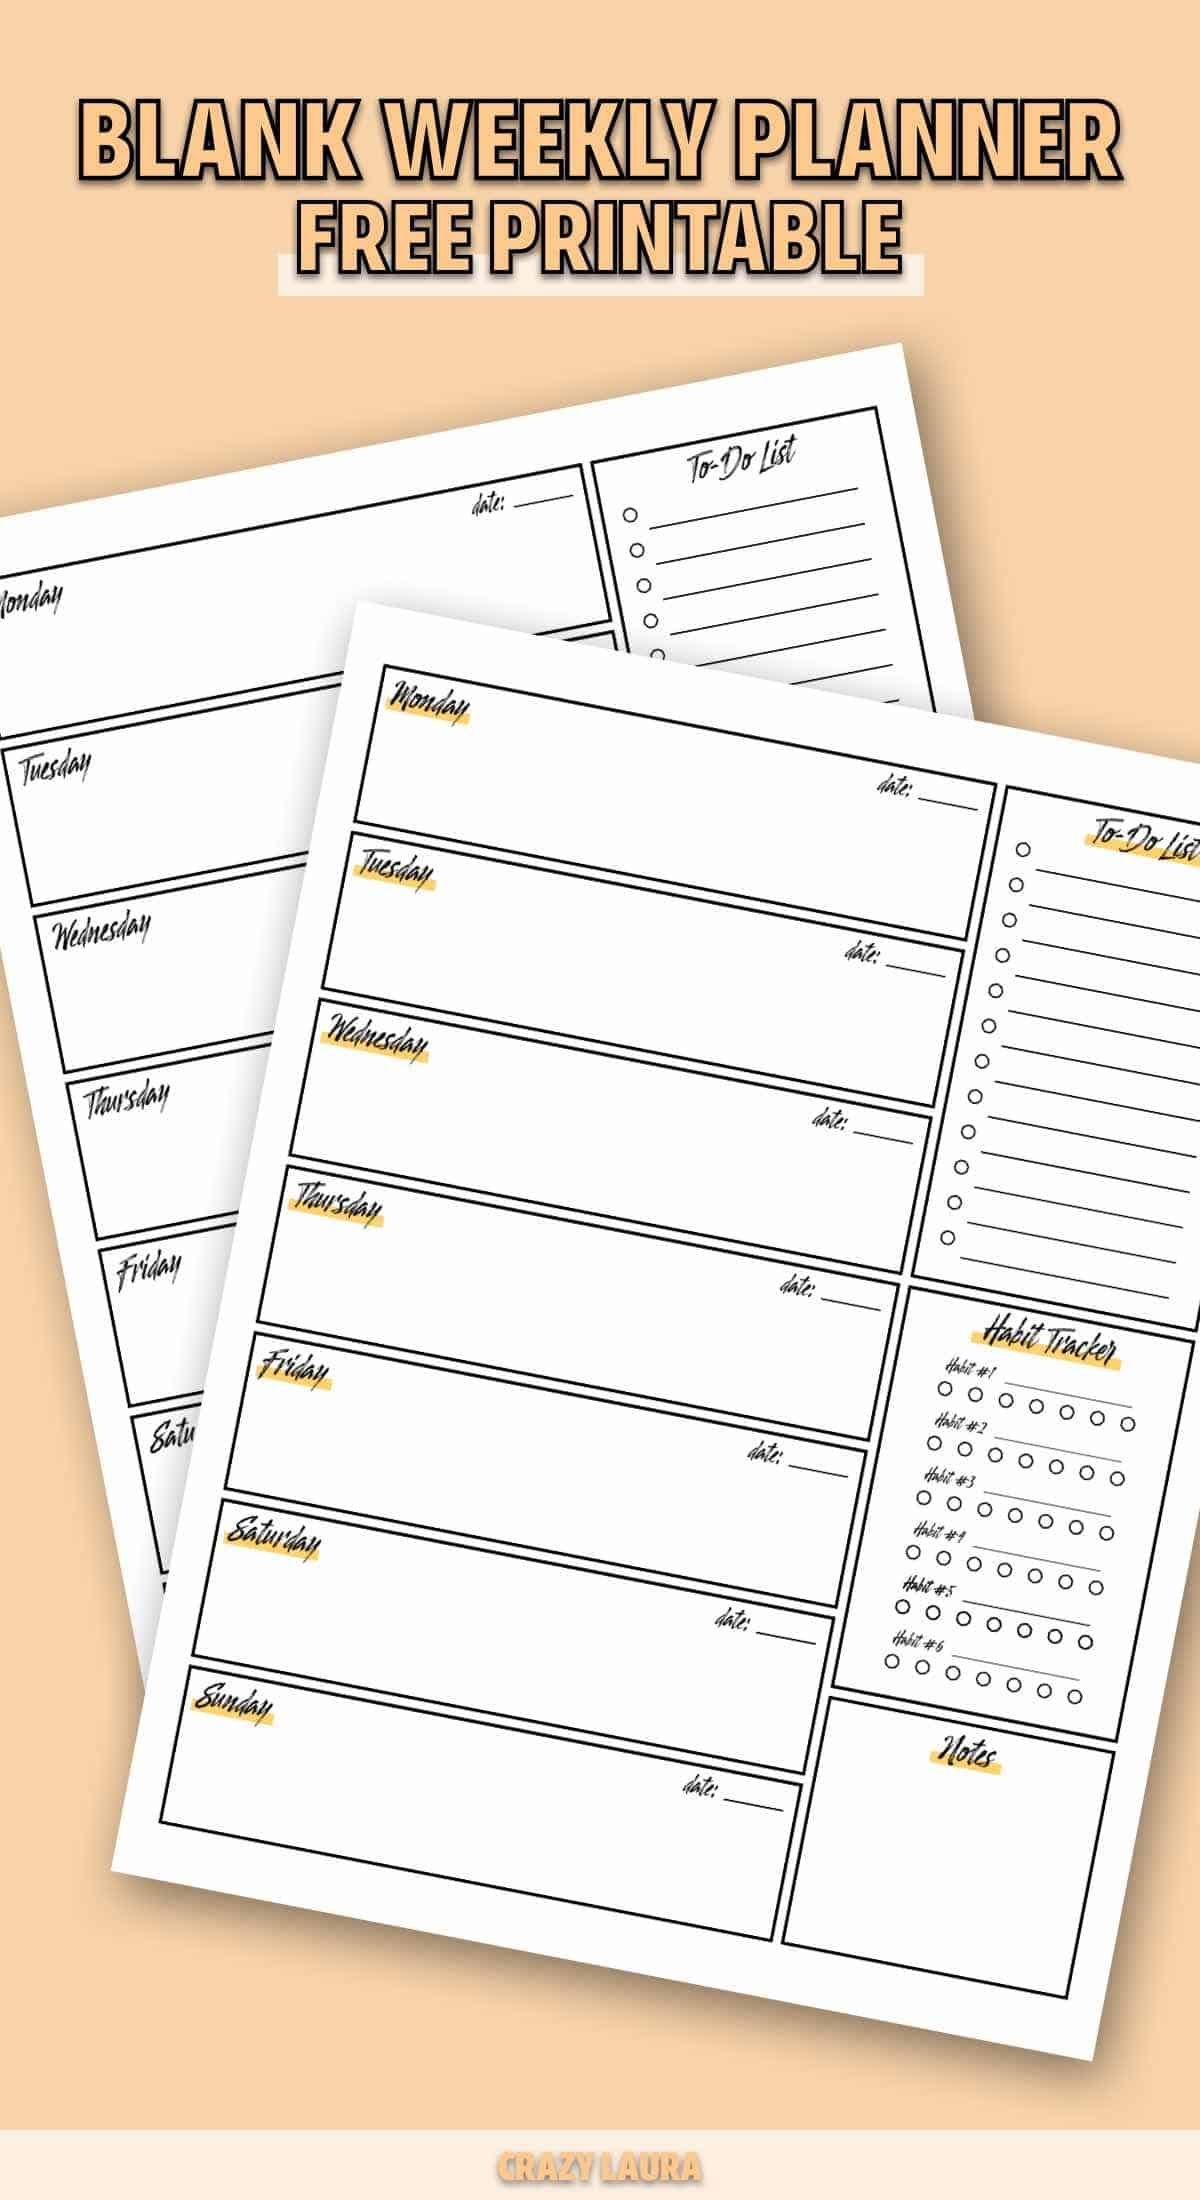 Free Weekly Planner Printable With Different Colors